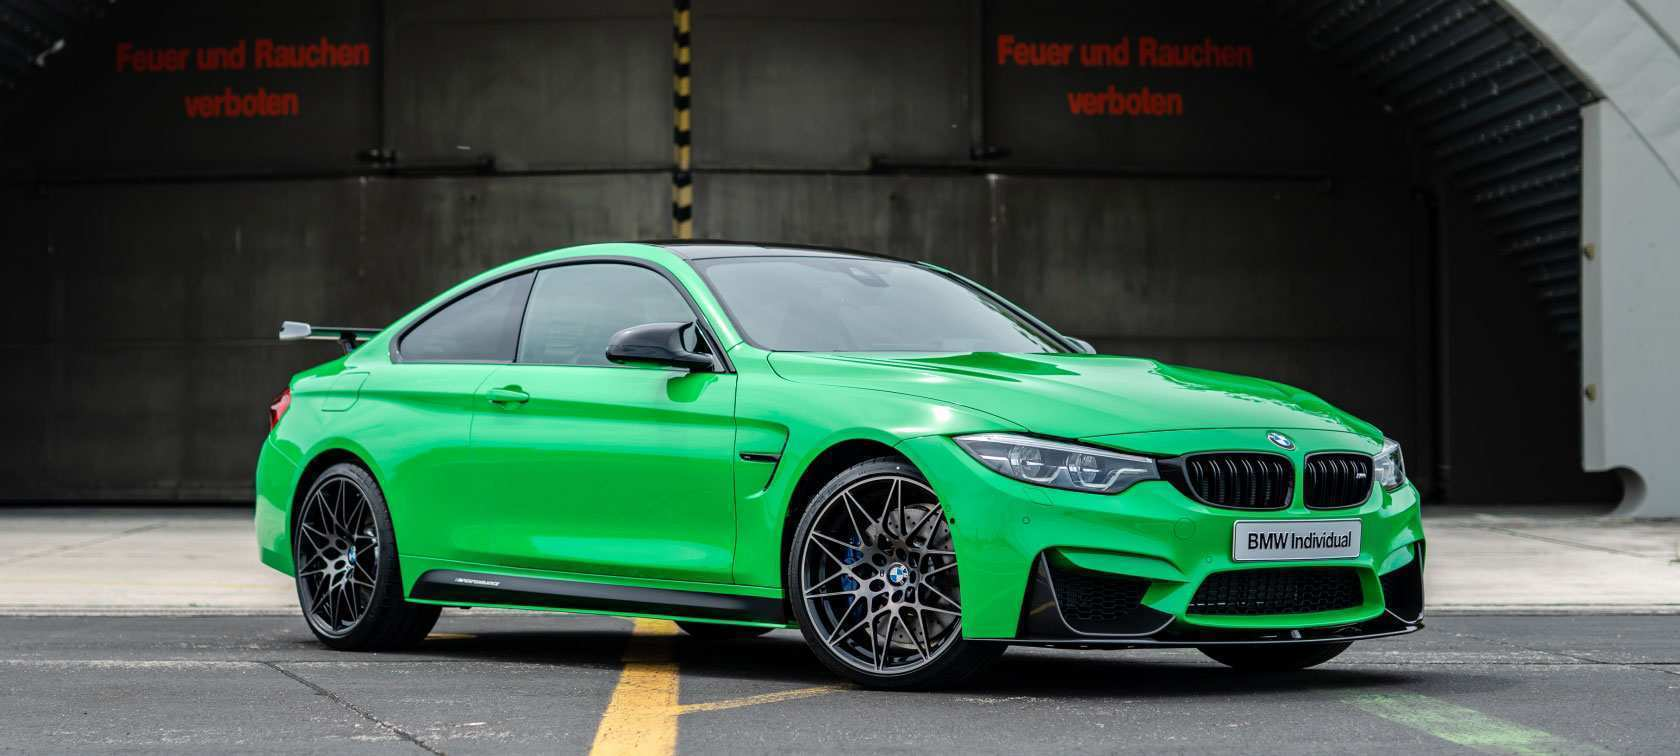 45 The Best 2019 BMW M4 Colors Prices